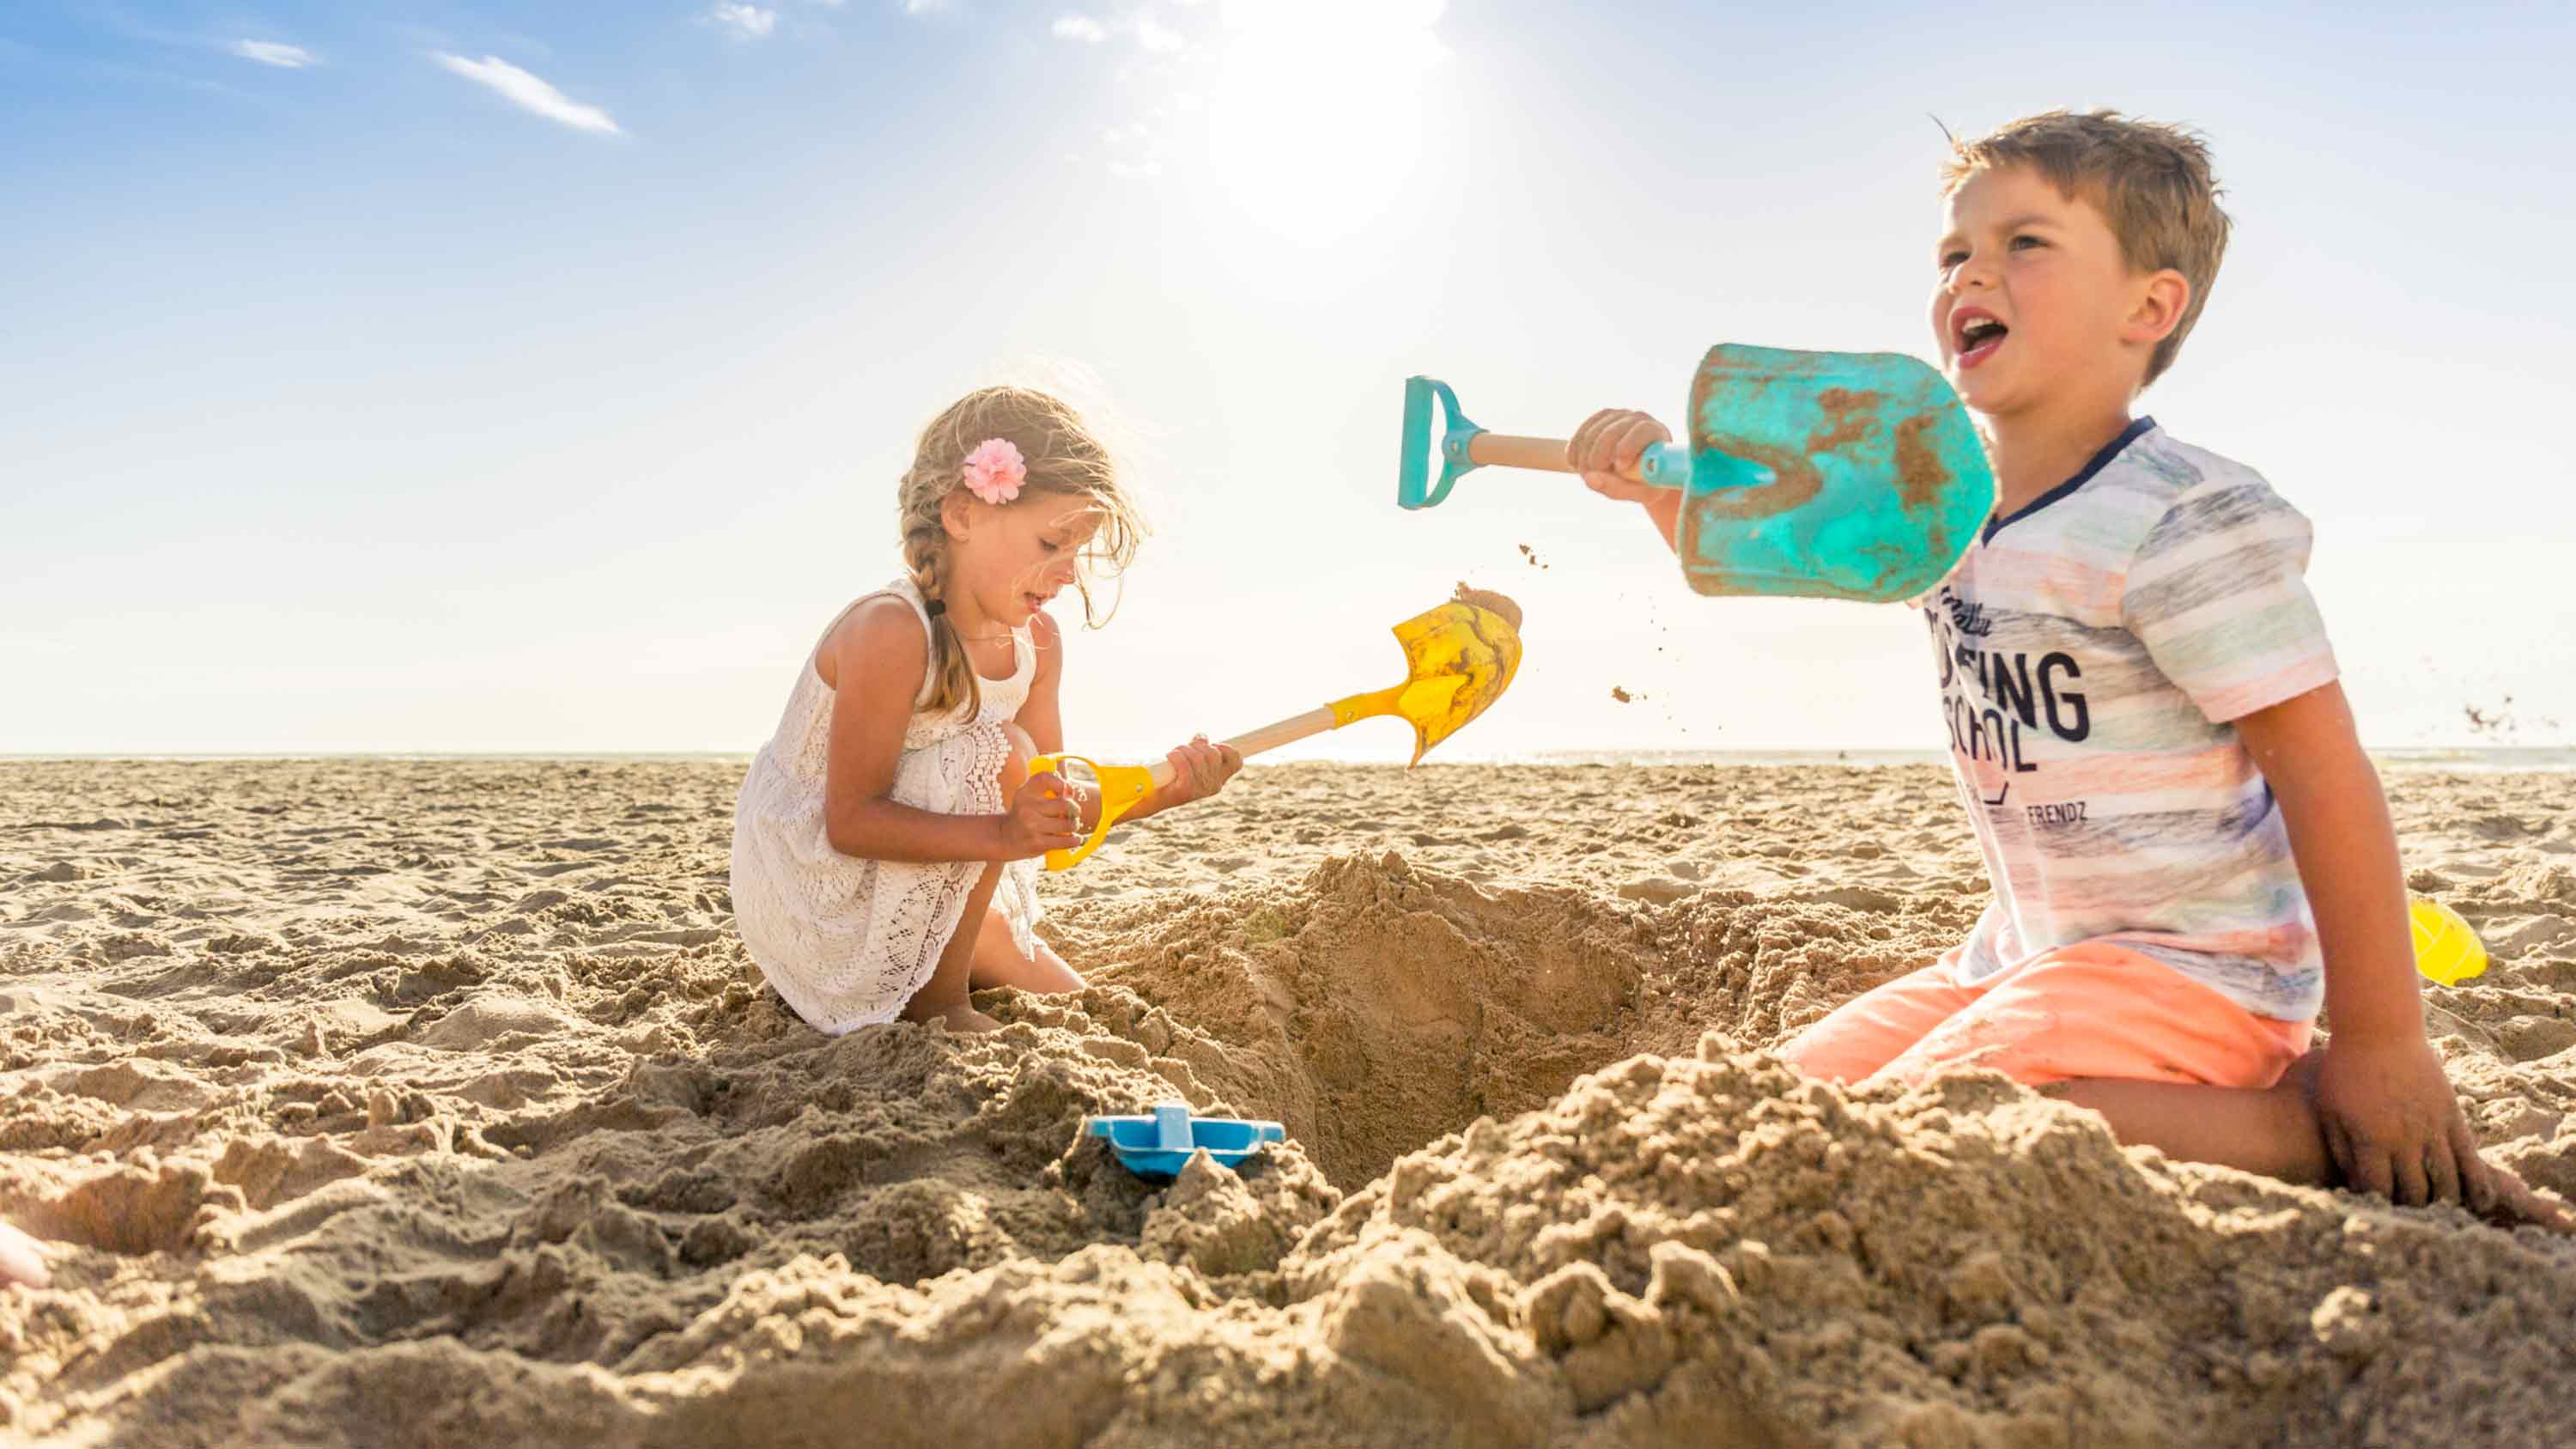 Campings direct aan zee